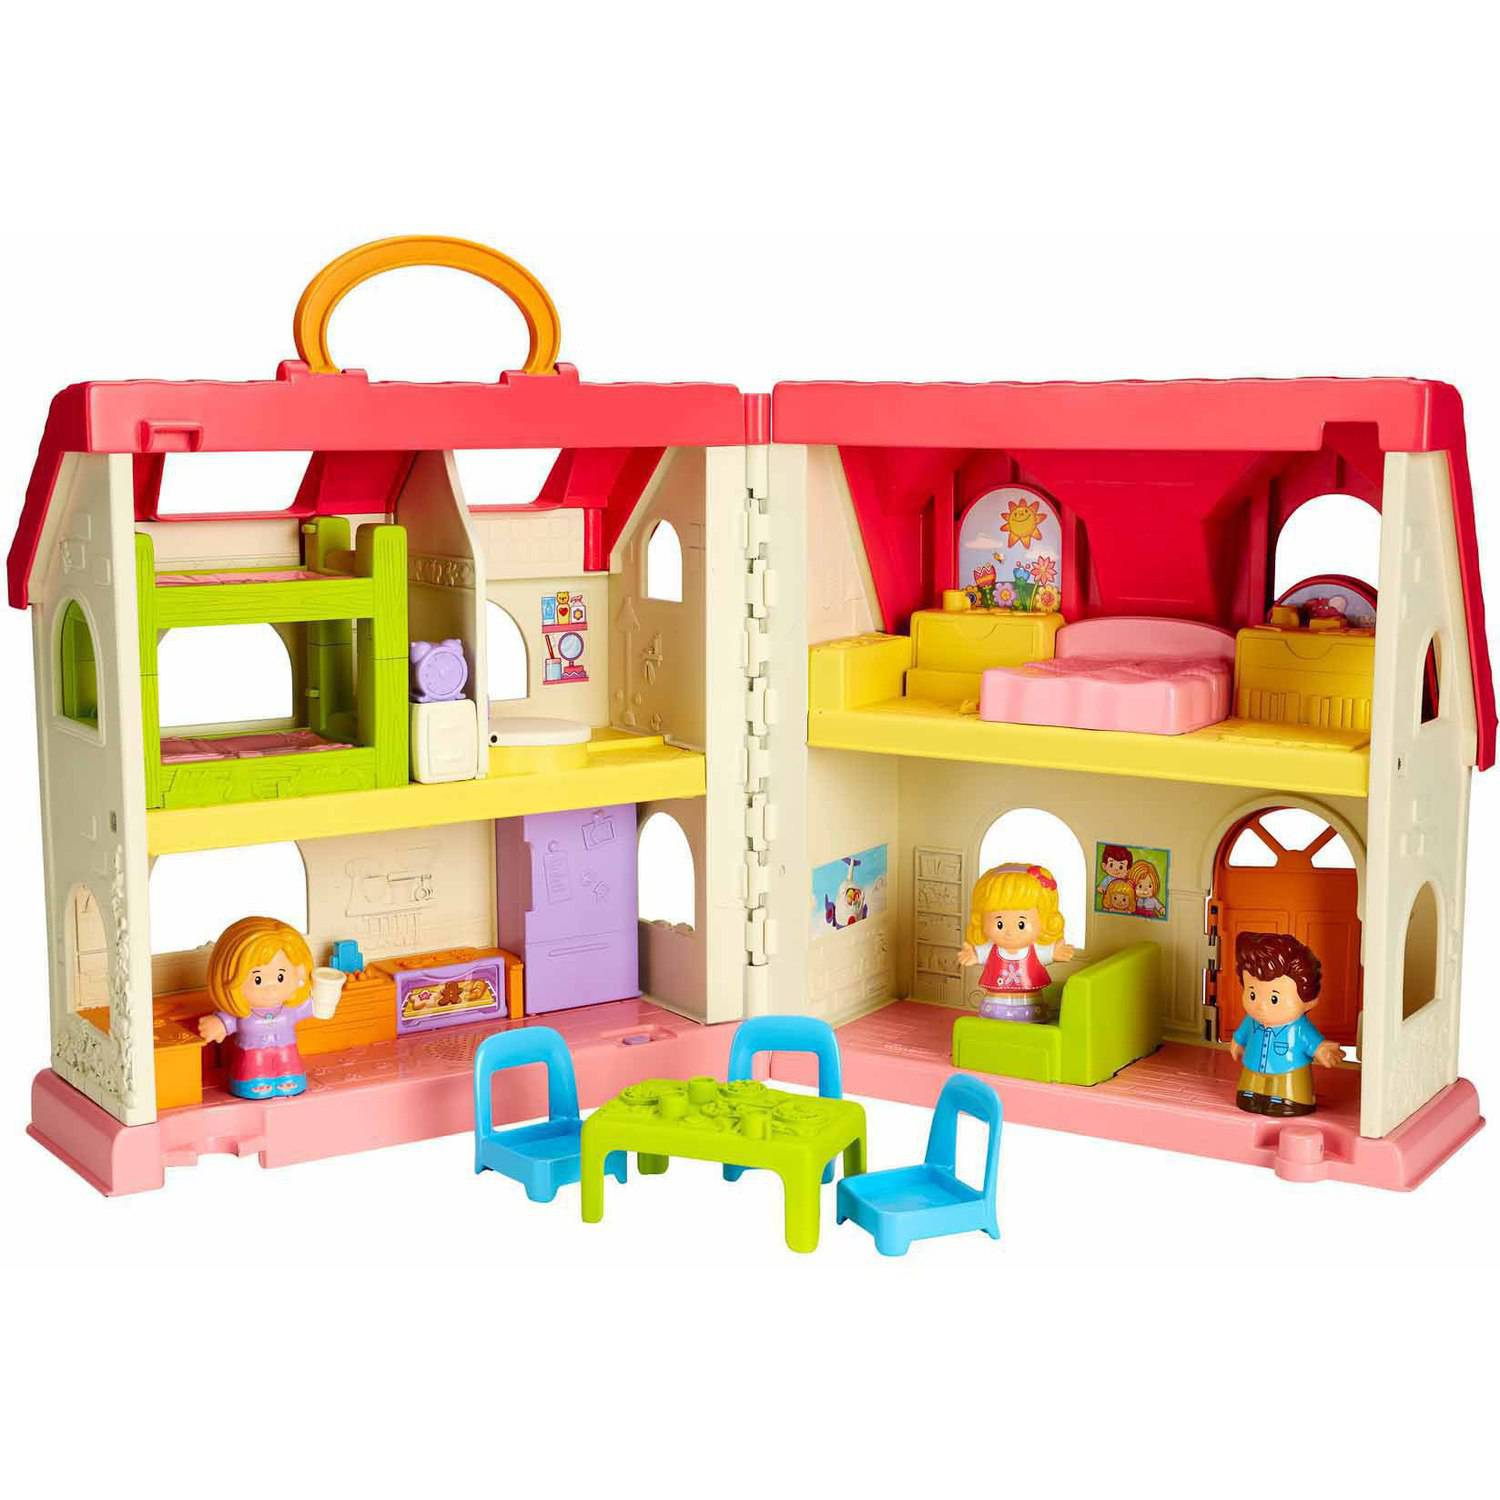 Little People Surprise Sounds Home Walmart Com